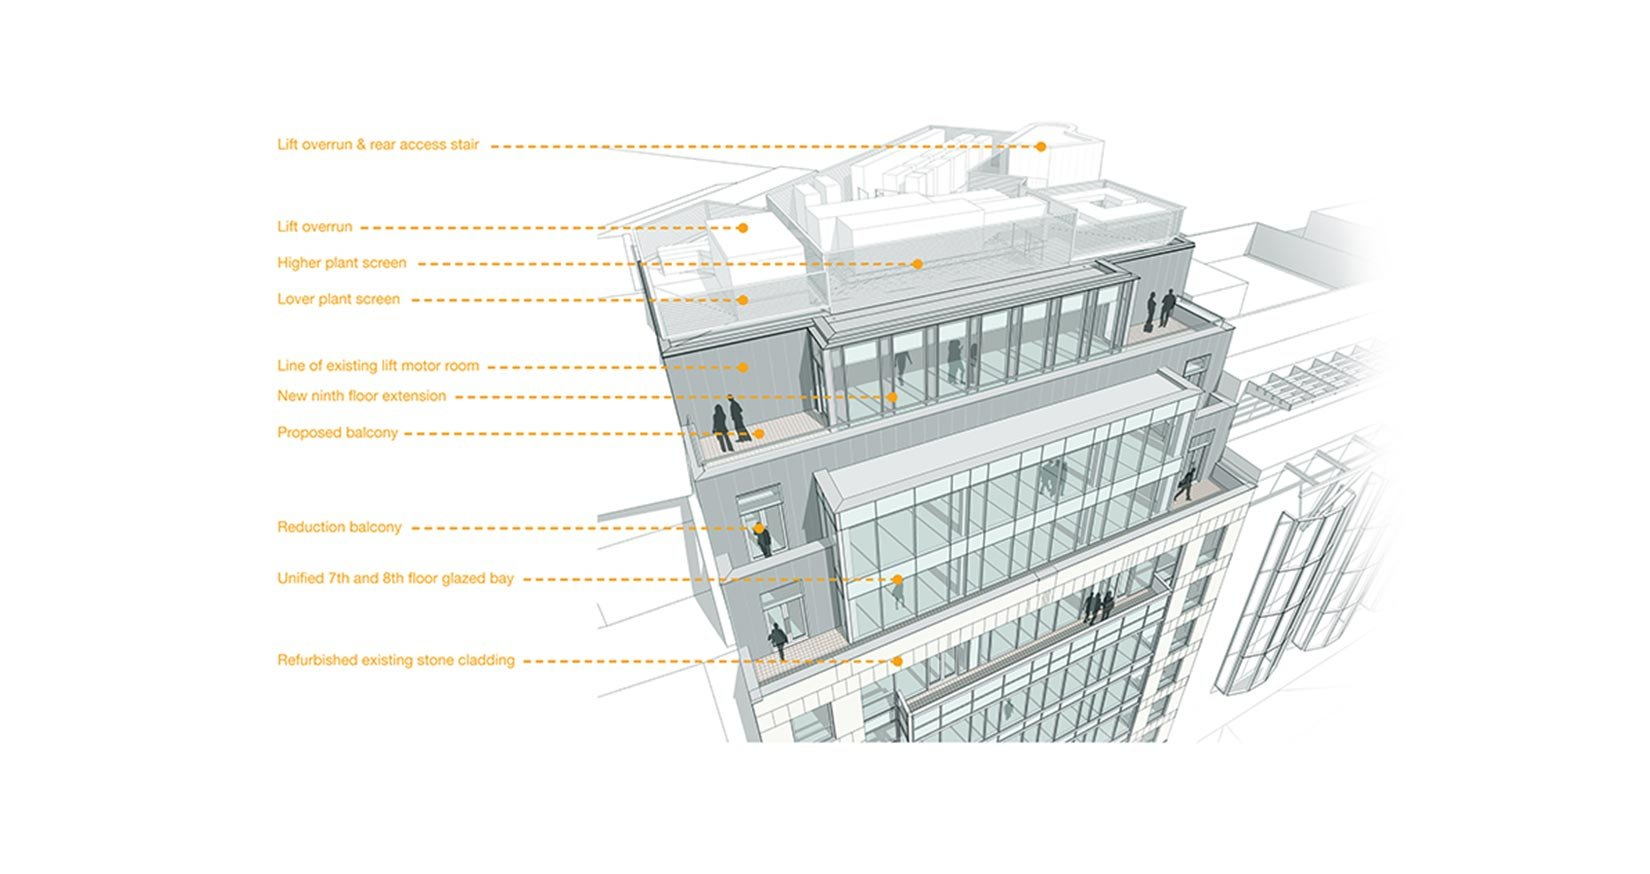 20 Saint Andrews House, Holburn, London, BIM Diagram